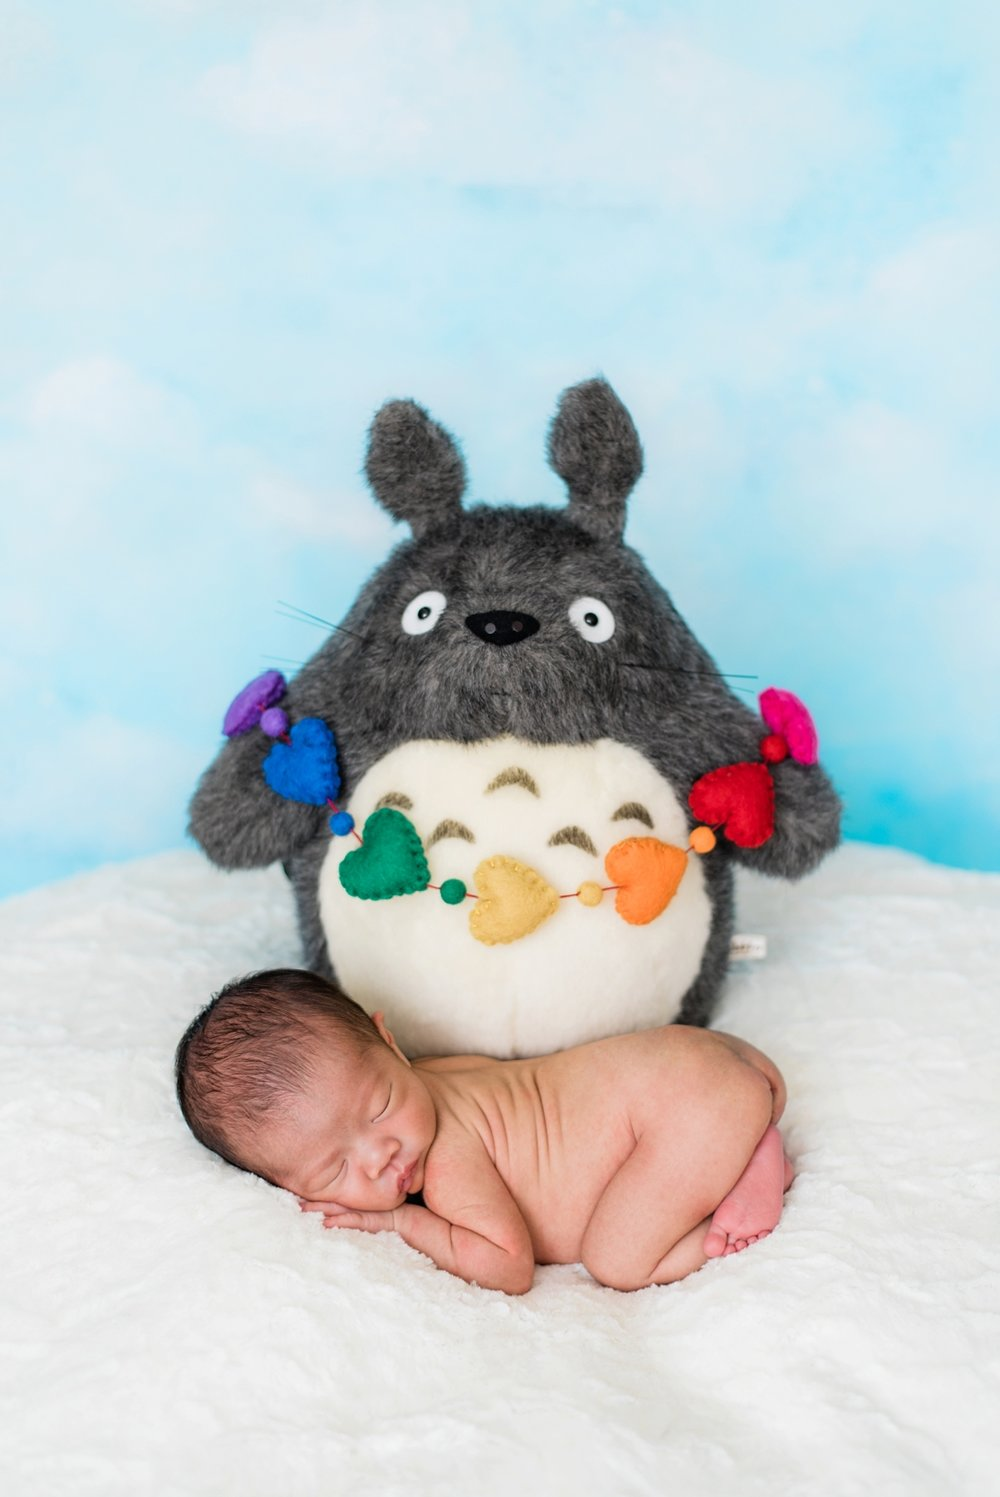 totoro-rainbow-baby-newborn-photos-portland-shelley-marie-photography-008_cr.jpg